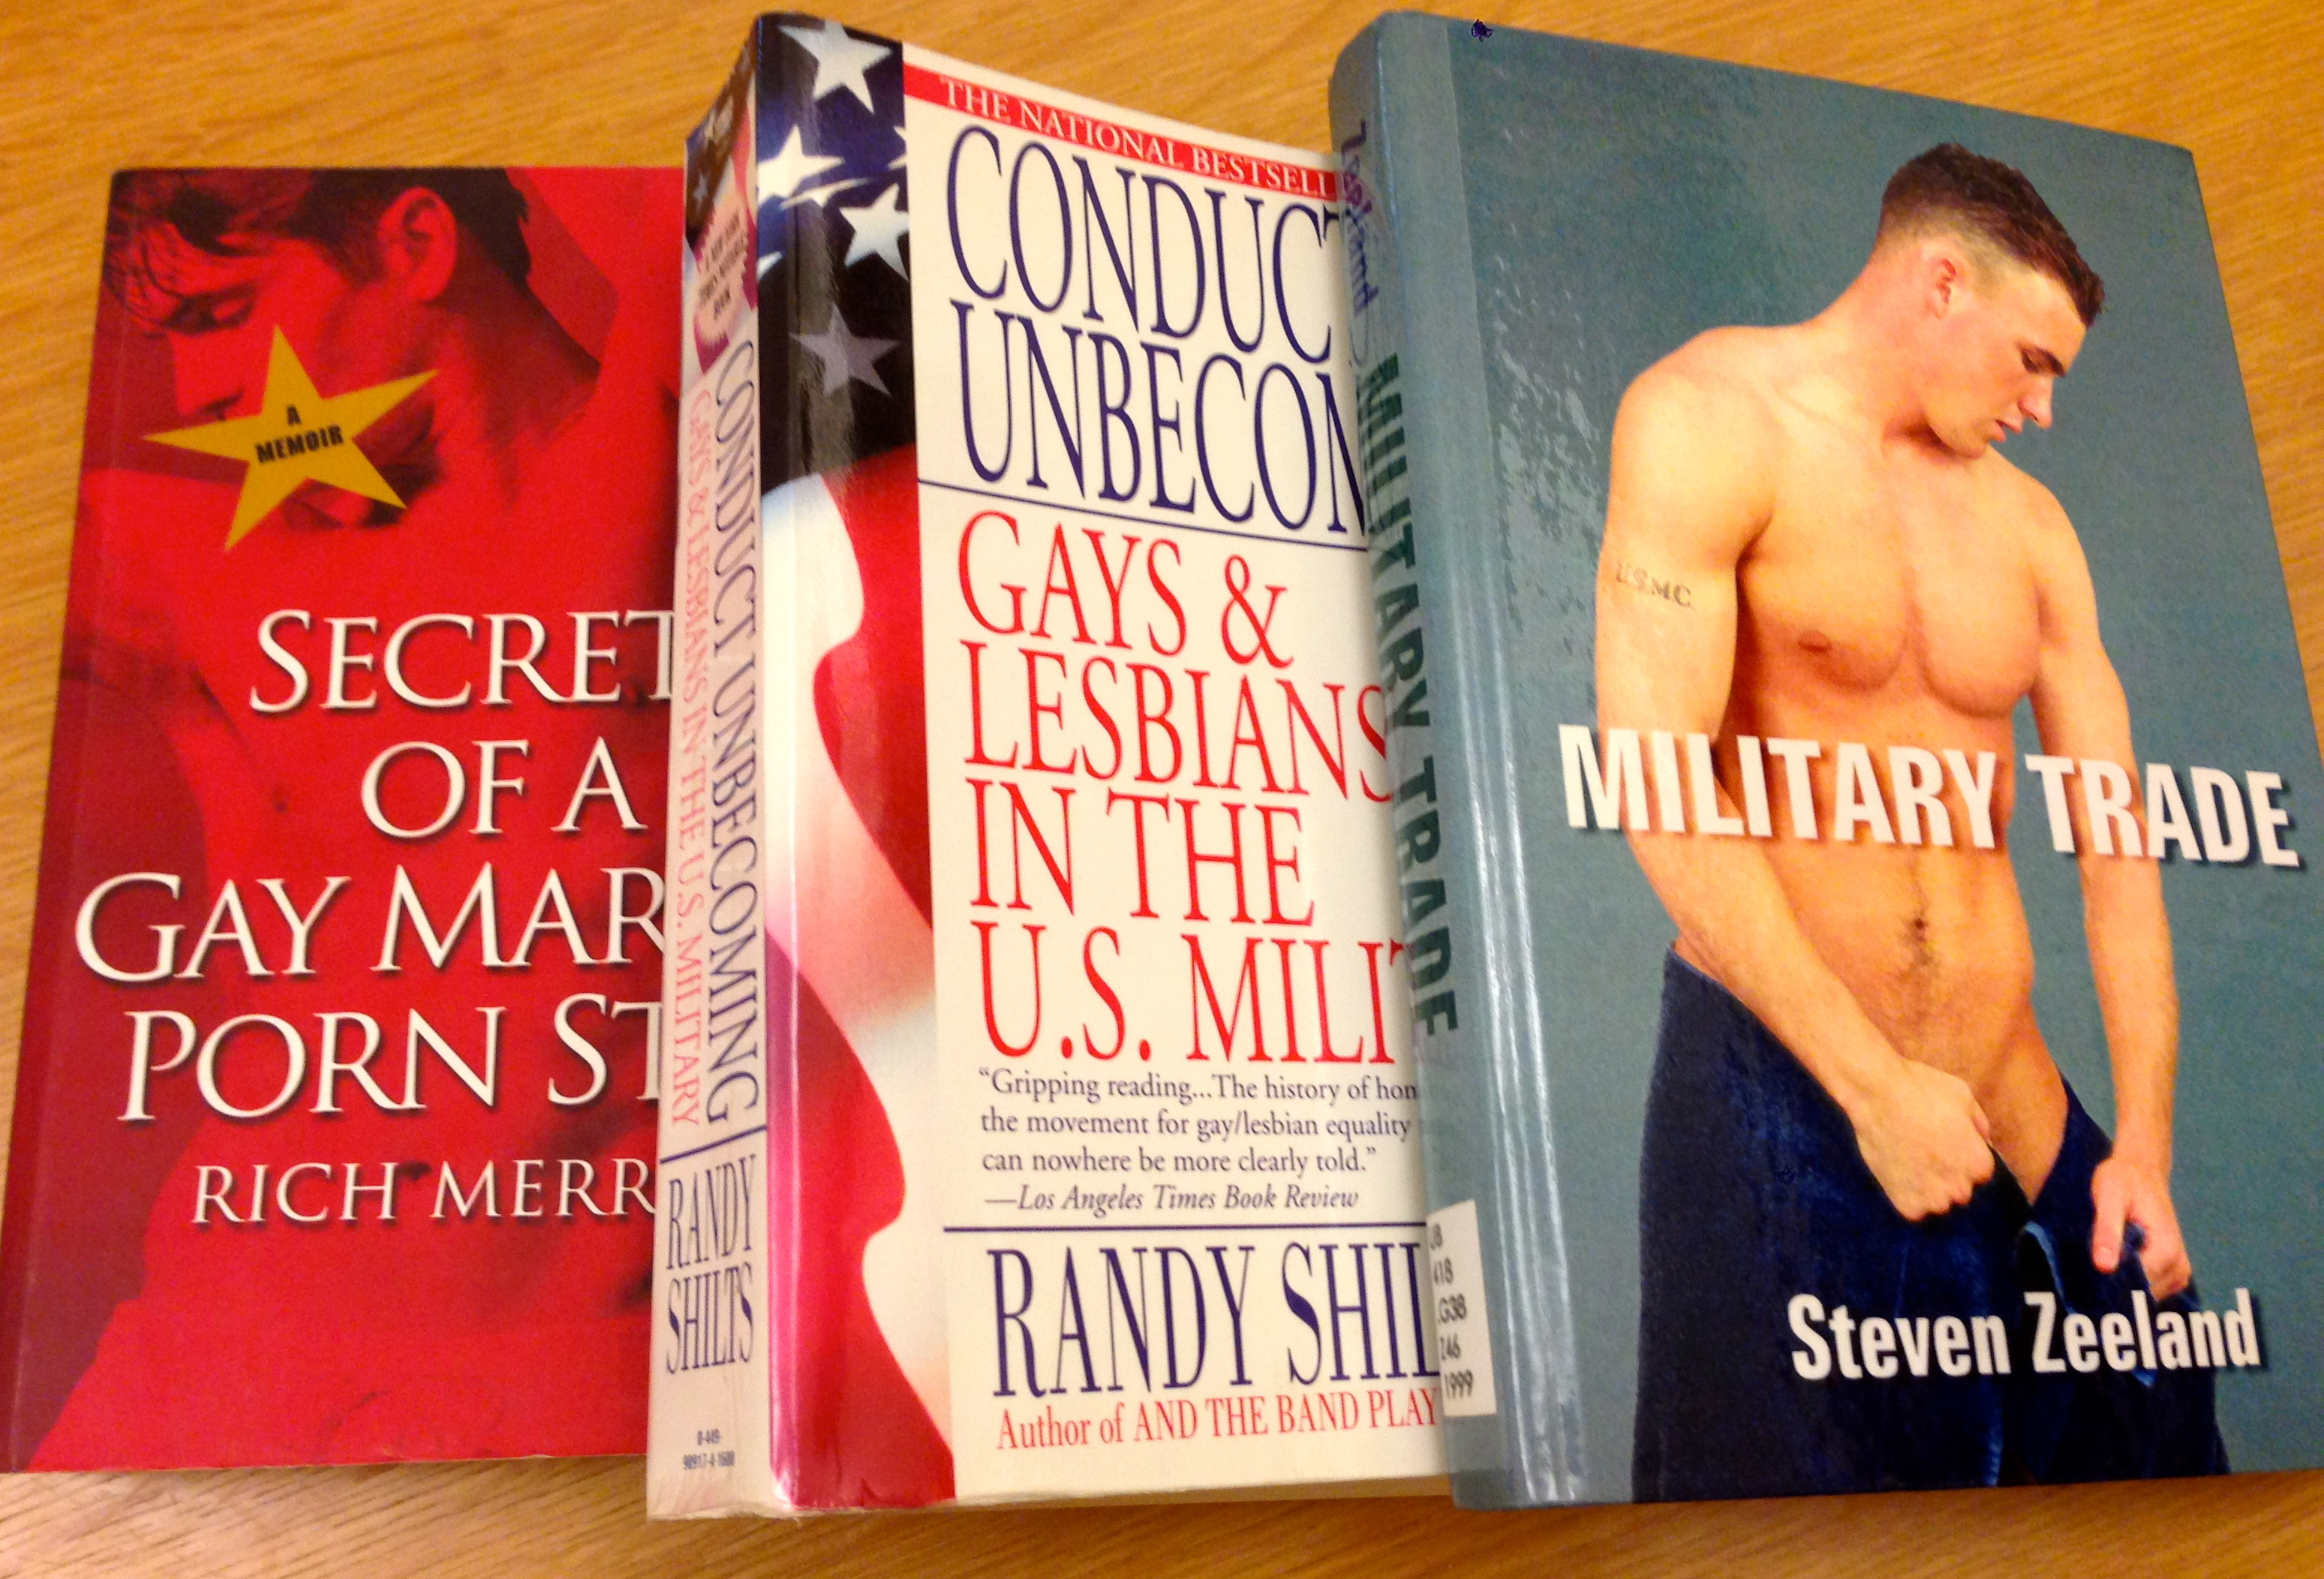 from Grayson conduct gay in lesbian military unbecoming us